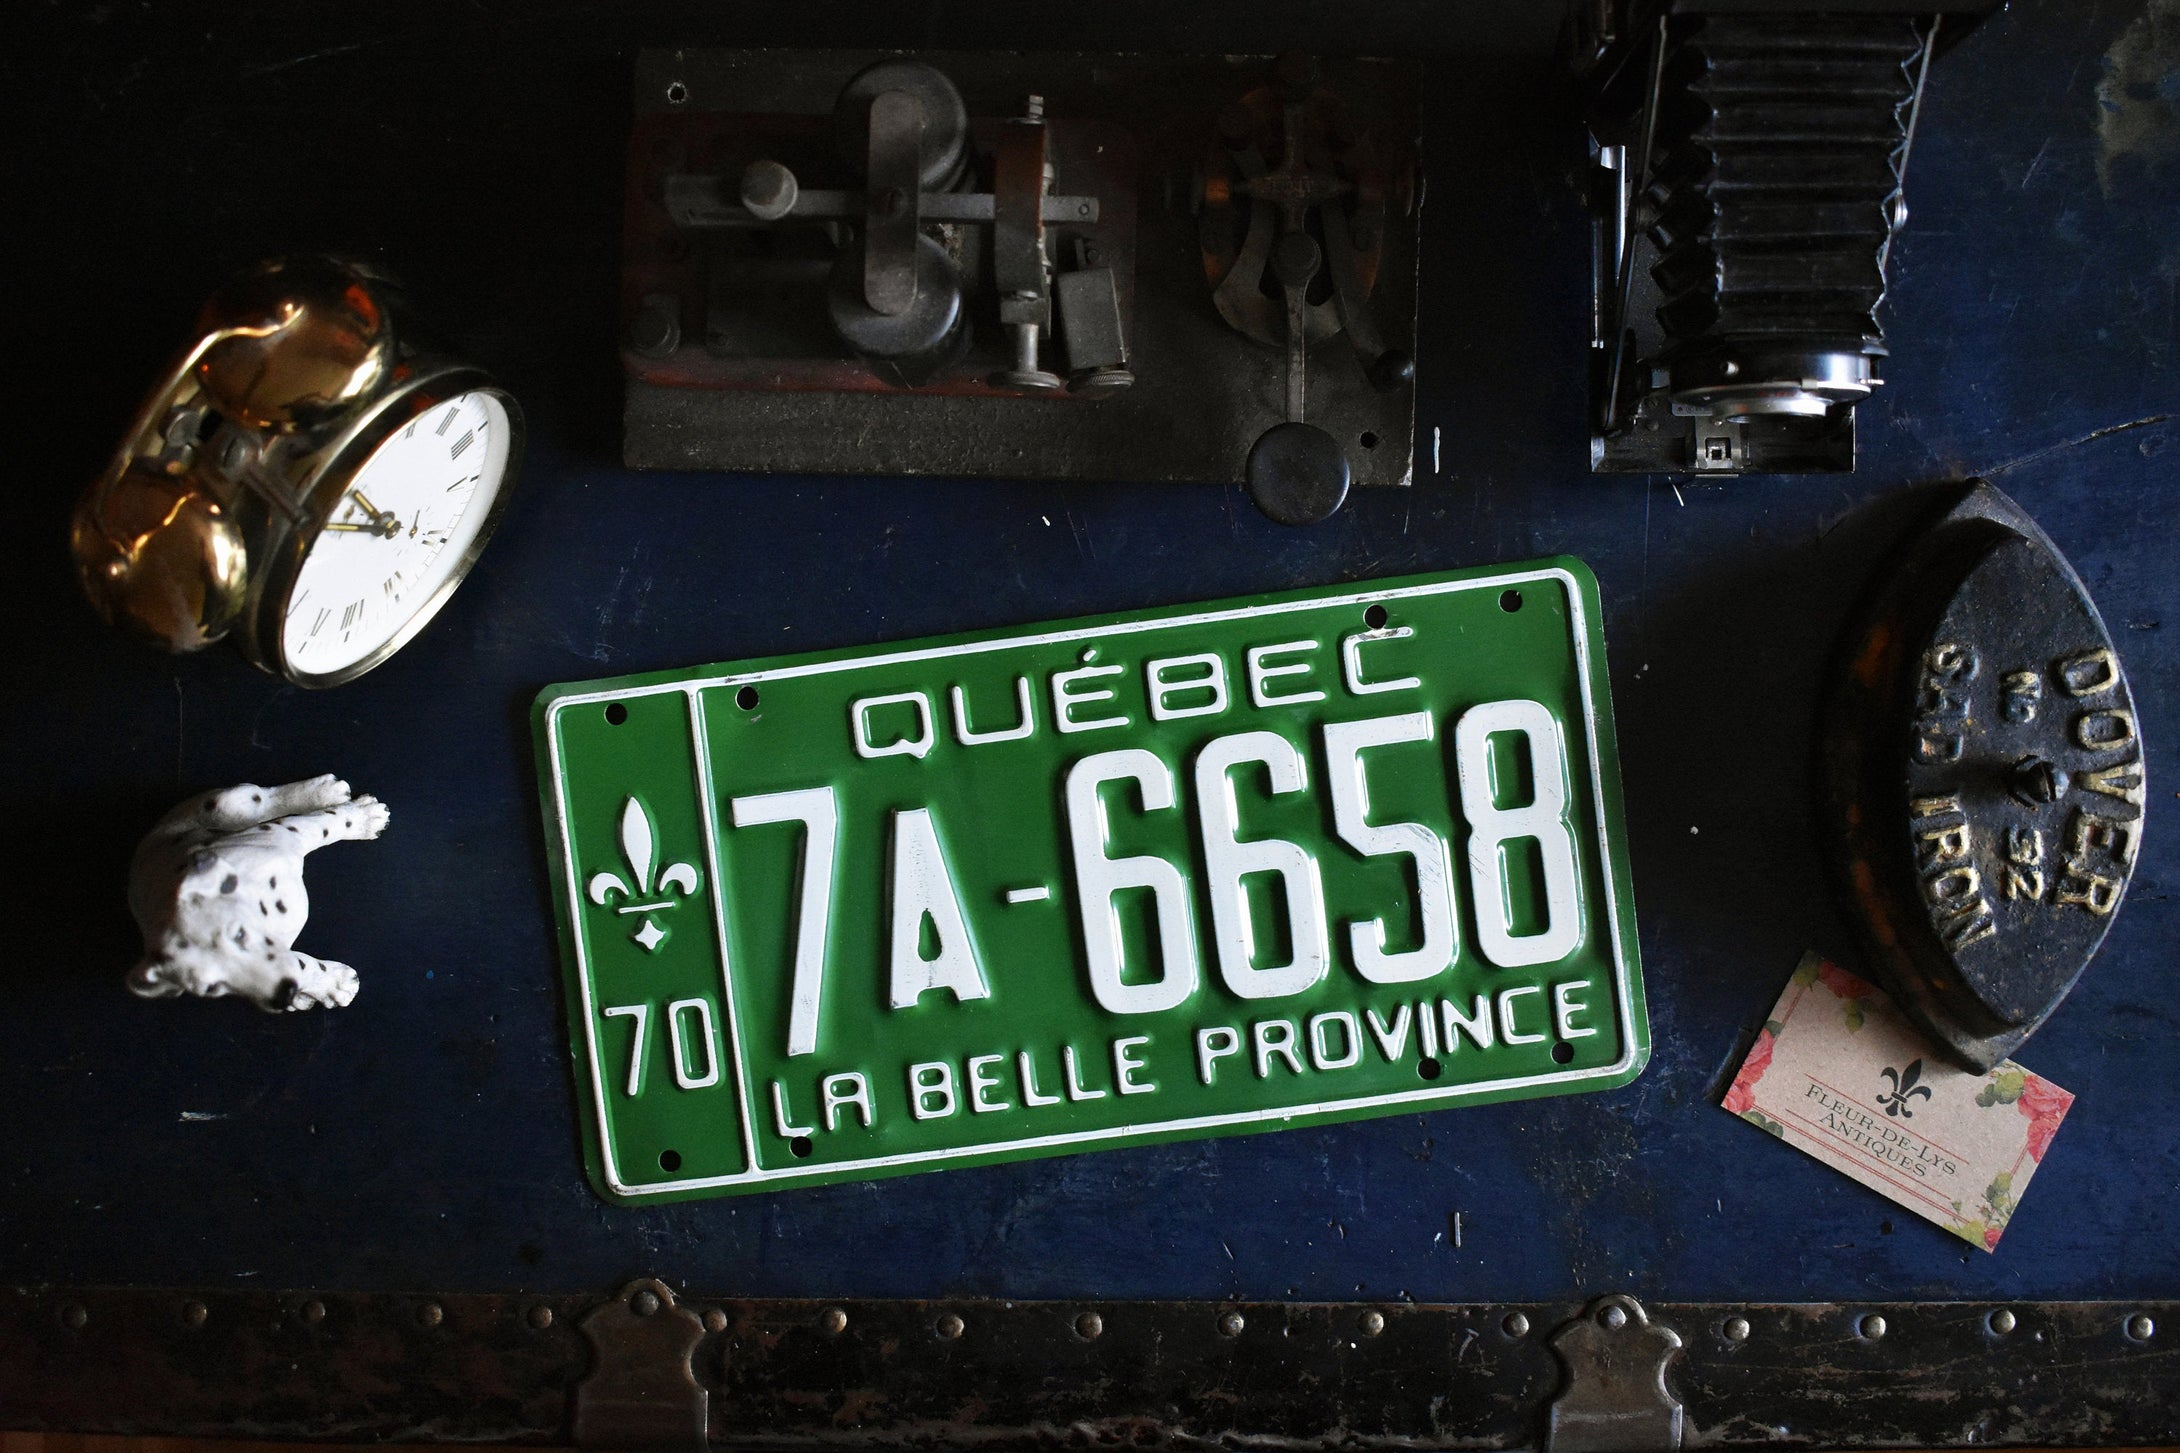 1970 Quebec License Plate - 7A-6658 - Vintage Automobile ID - Wall Hanging - Industrial Decor -  Canadian Provinces